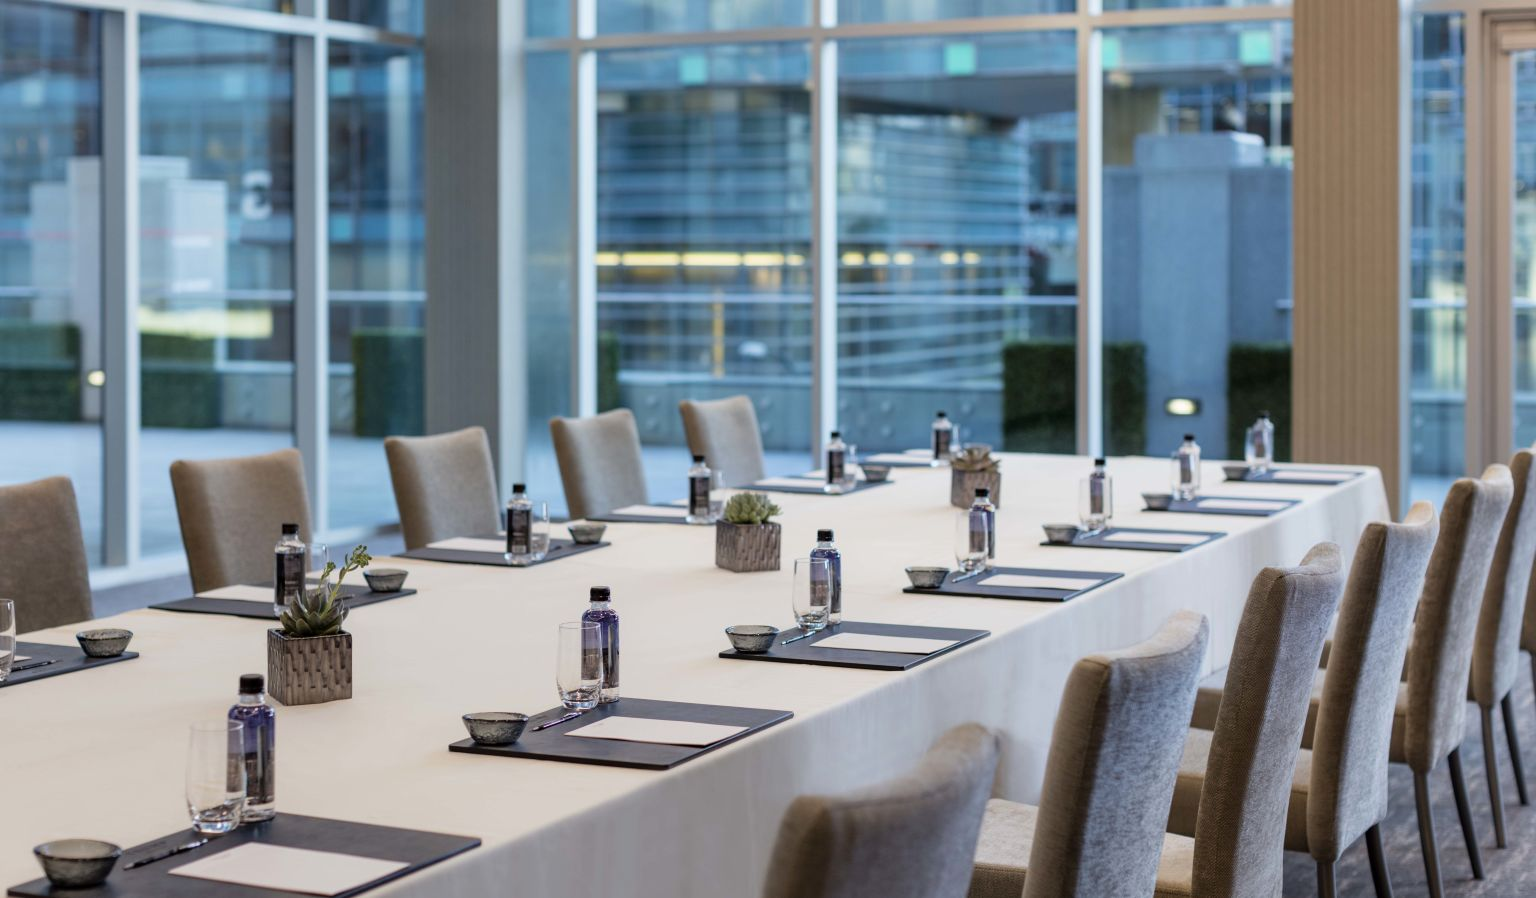 hotel interior meeting room with table arrangement, water bottles